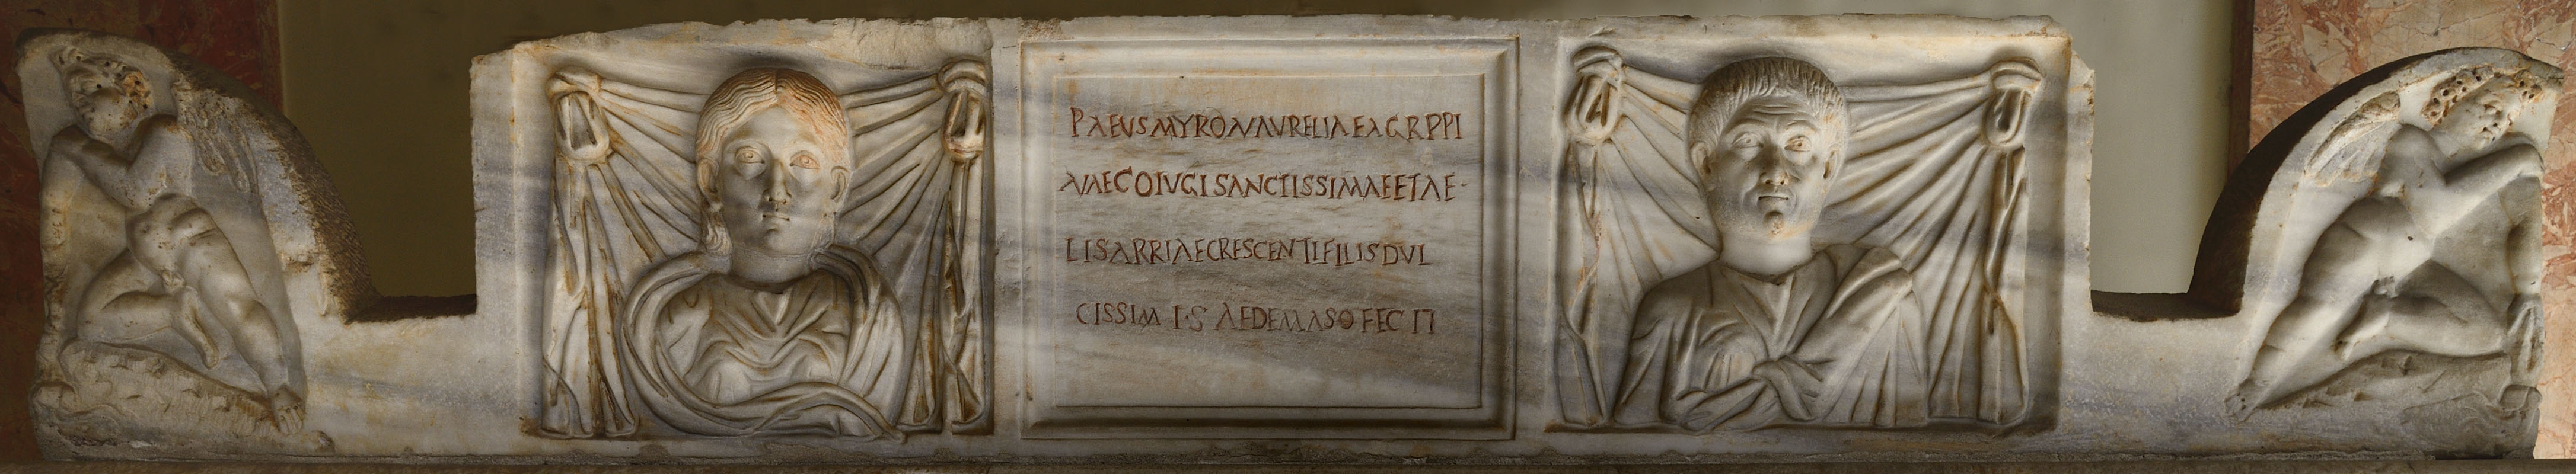 Lid of a sarcophagus of Paeus (Publius Aelius?) Myron and his family. Marble. 3rd century CE. Inv. No. 932. Rome, Vatican Museums, Pius-Clementine Museum, Octagonal Court, Nord portico, 27